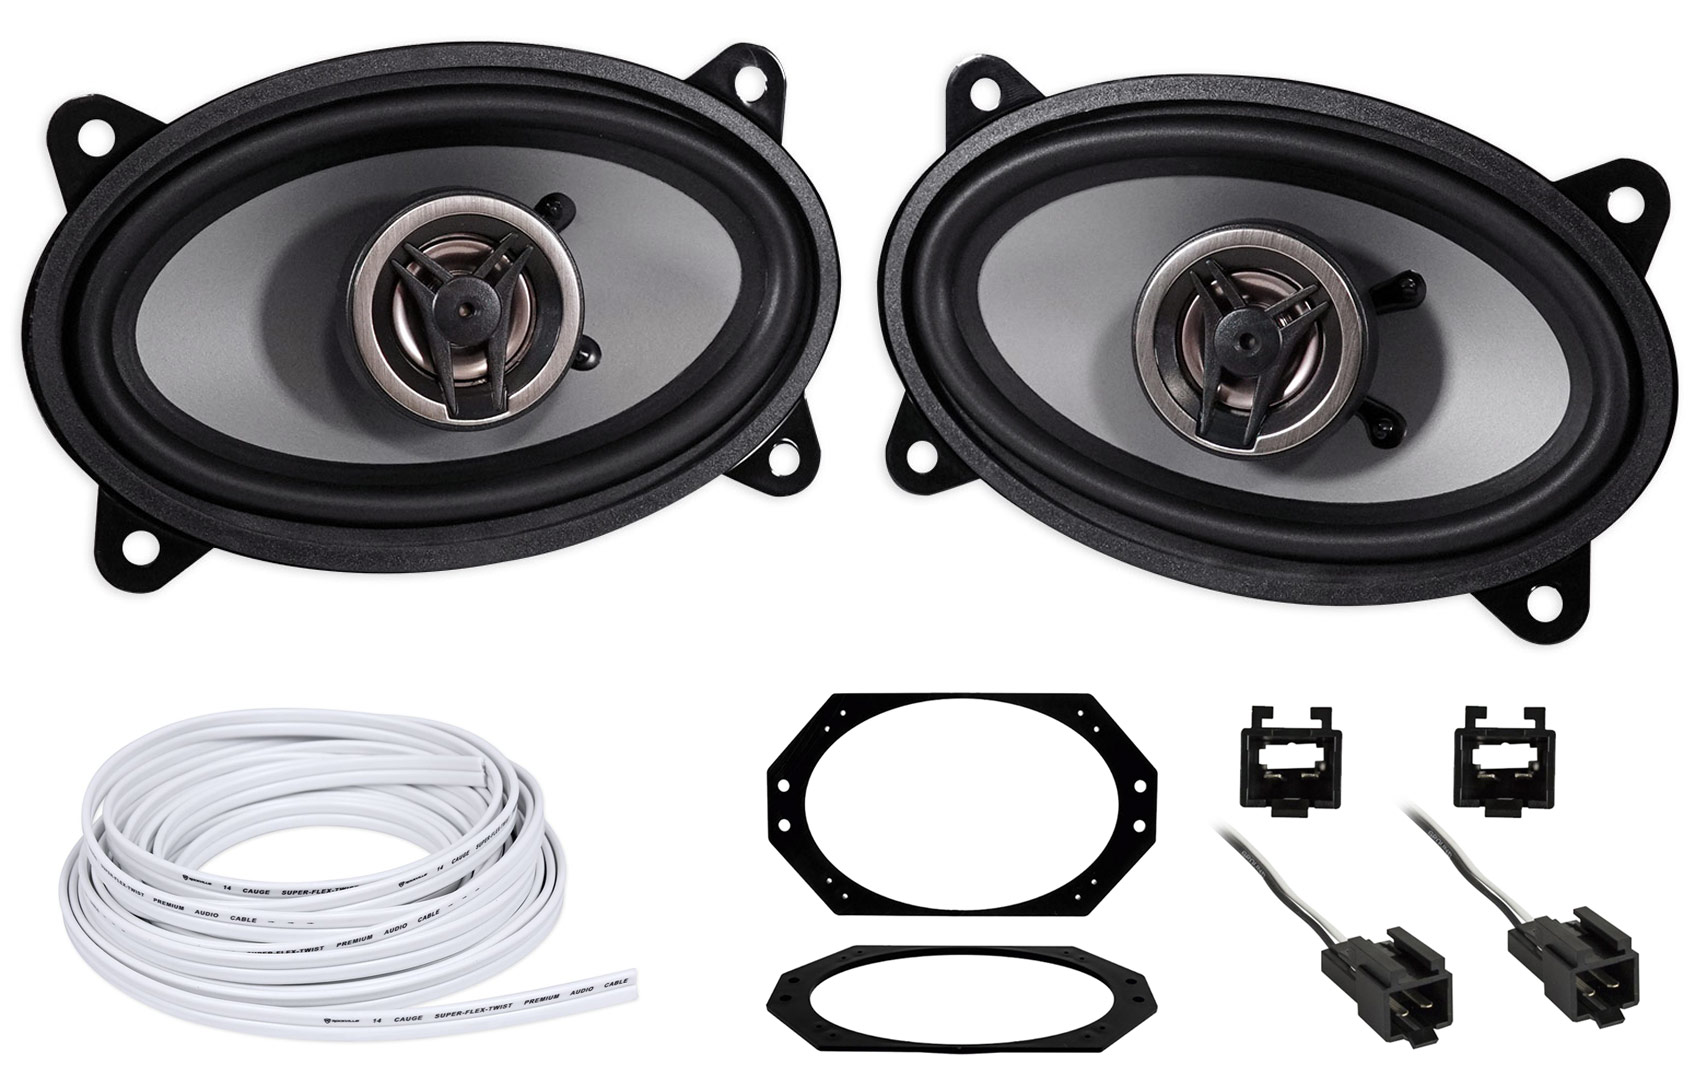 hight resolution of crunch 4x6 front factory speaker replacement harness for jeep wrangler tj 97 02 walmart com